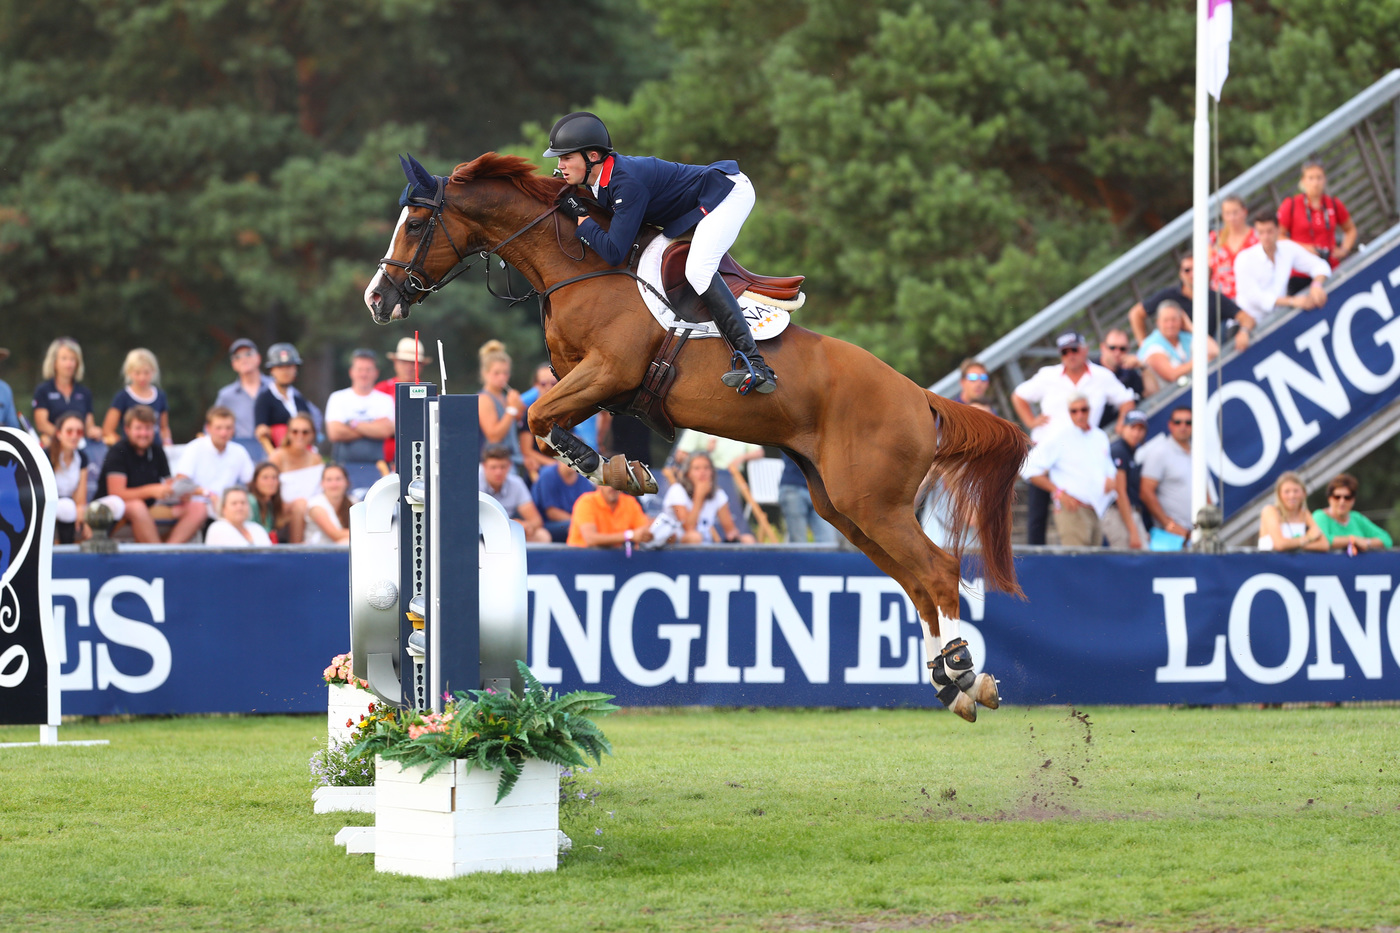 Longines Show Jumping Event: The next generation of athletes showcased in the Longines FEI European Championships CH / J / YR 9